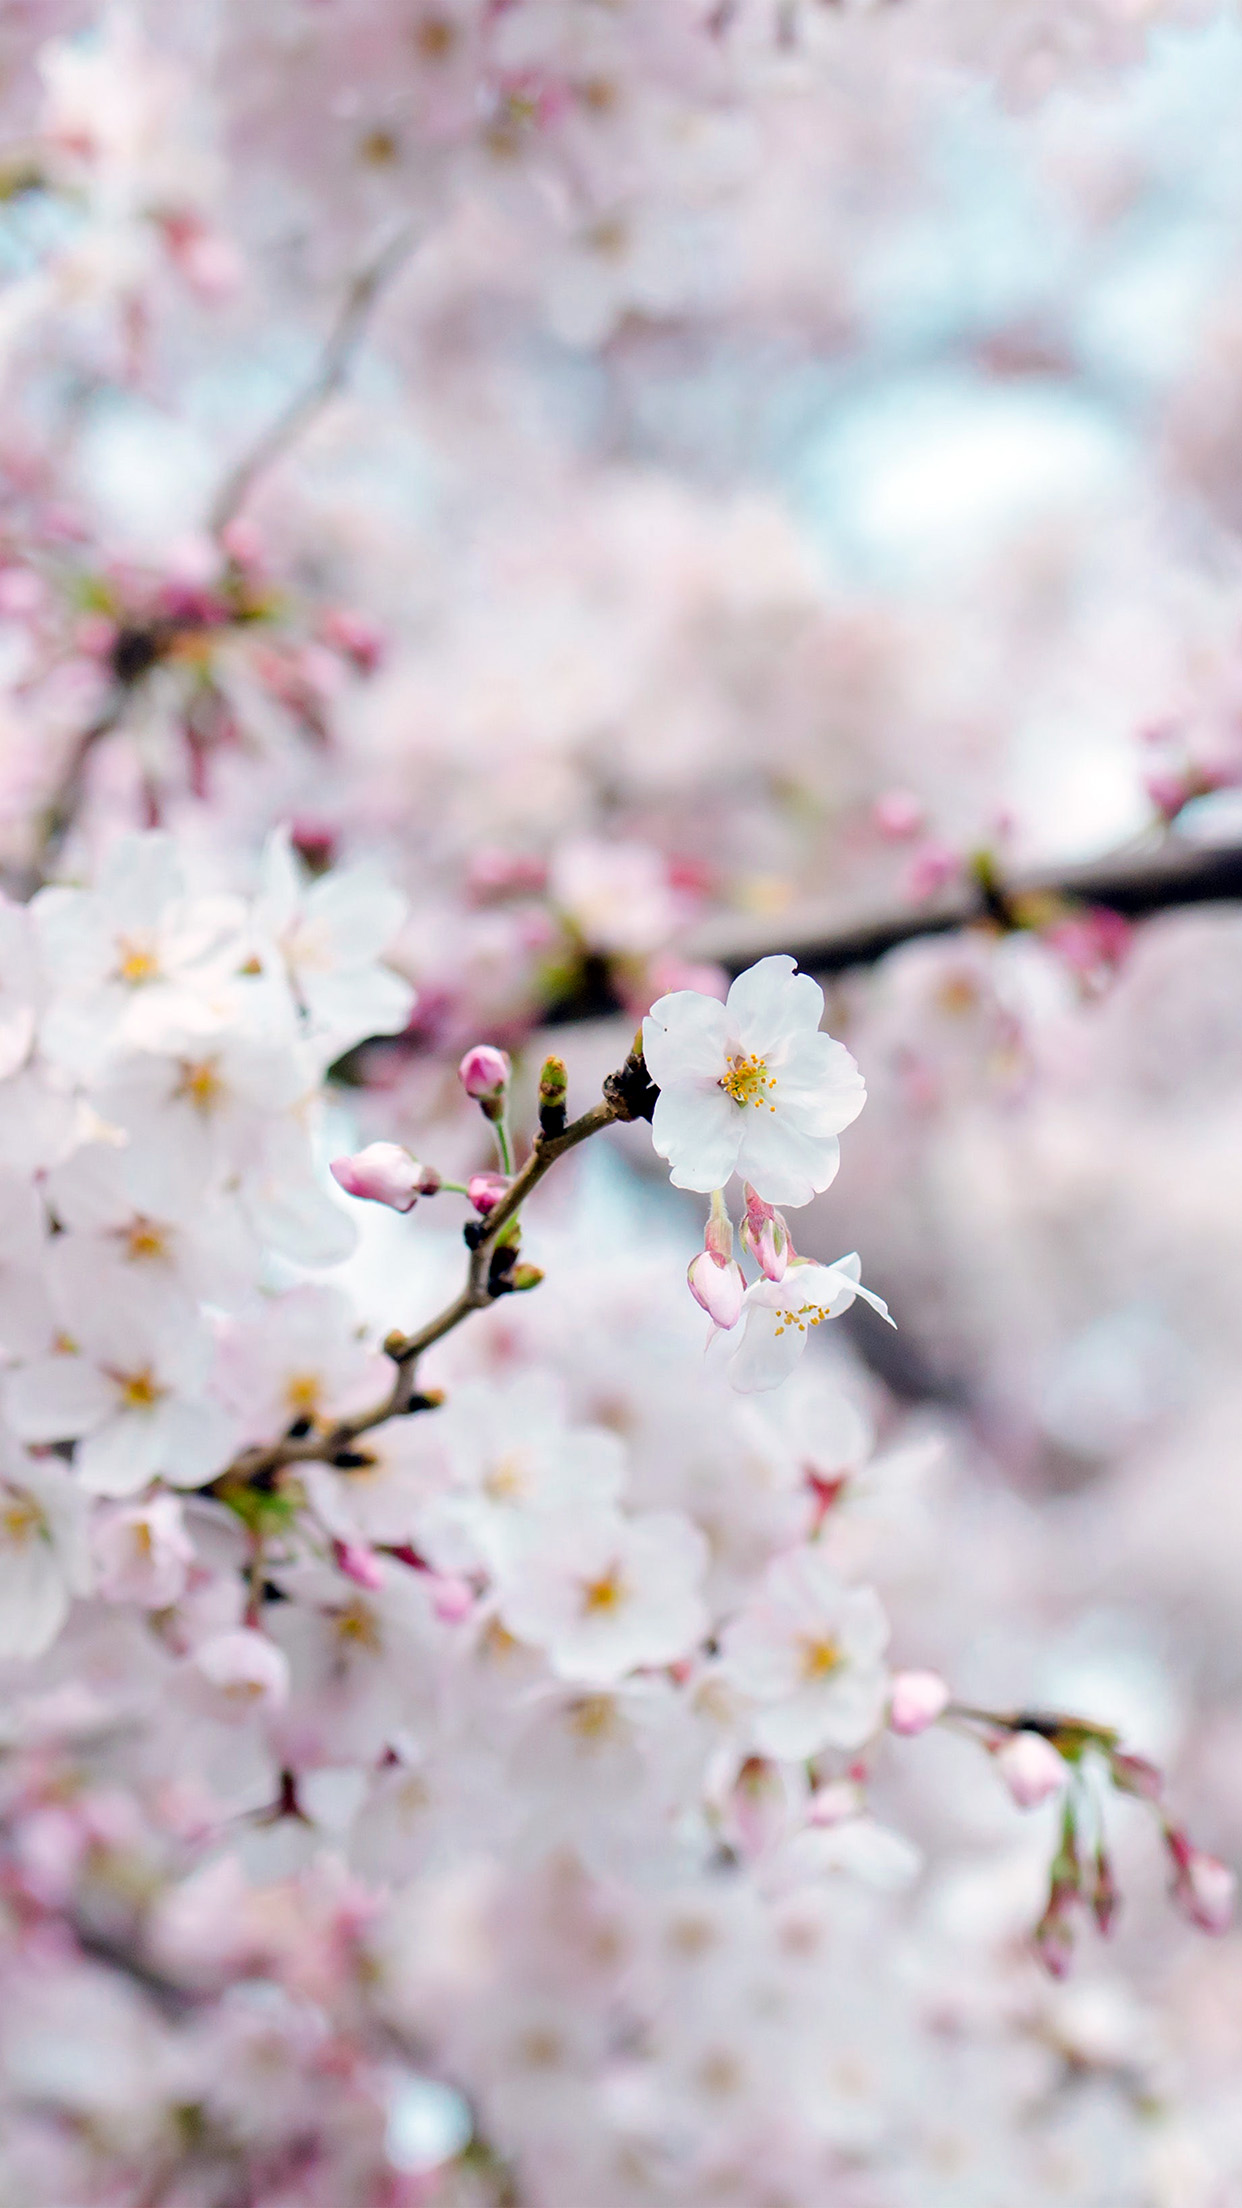 Cute Tree Wallpaper Nx70 Cherry Blossom Flower Spring Tree Bokeh Nature Wallpaper